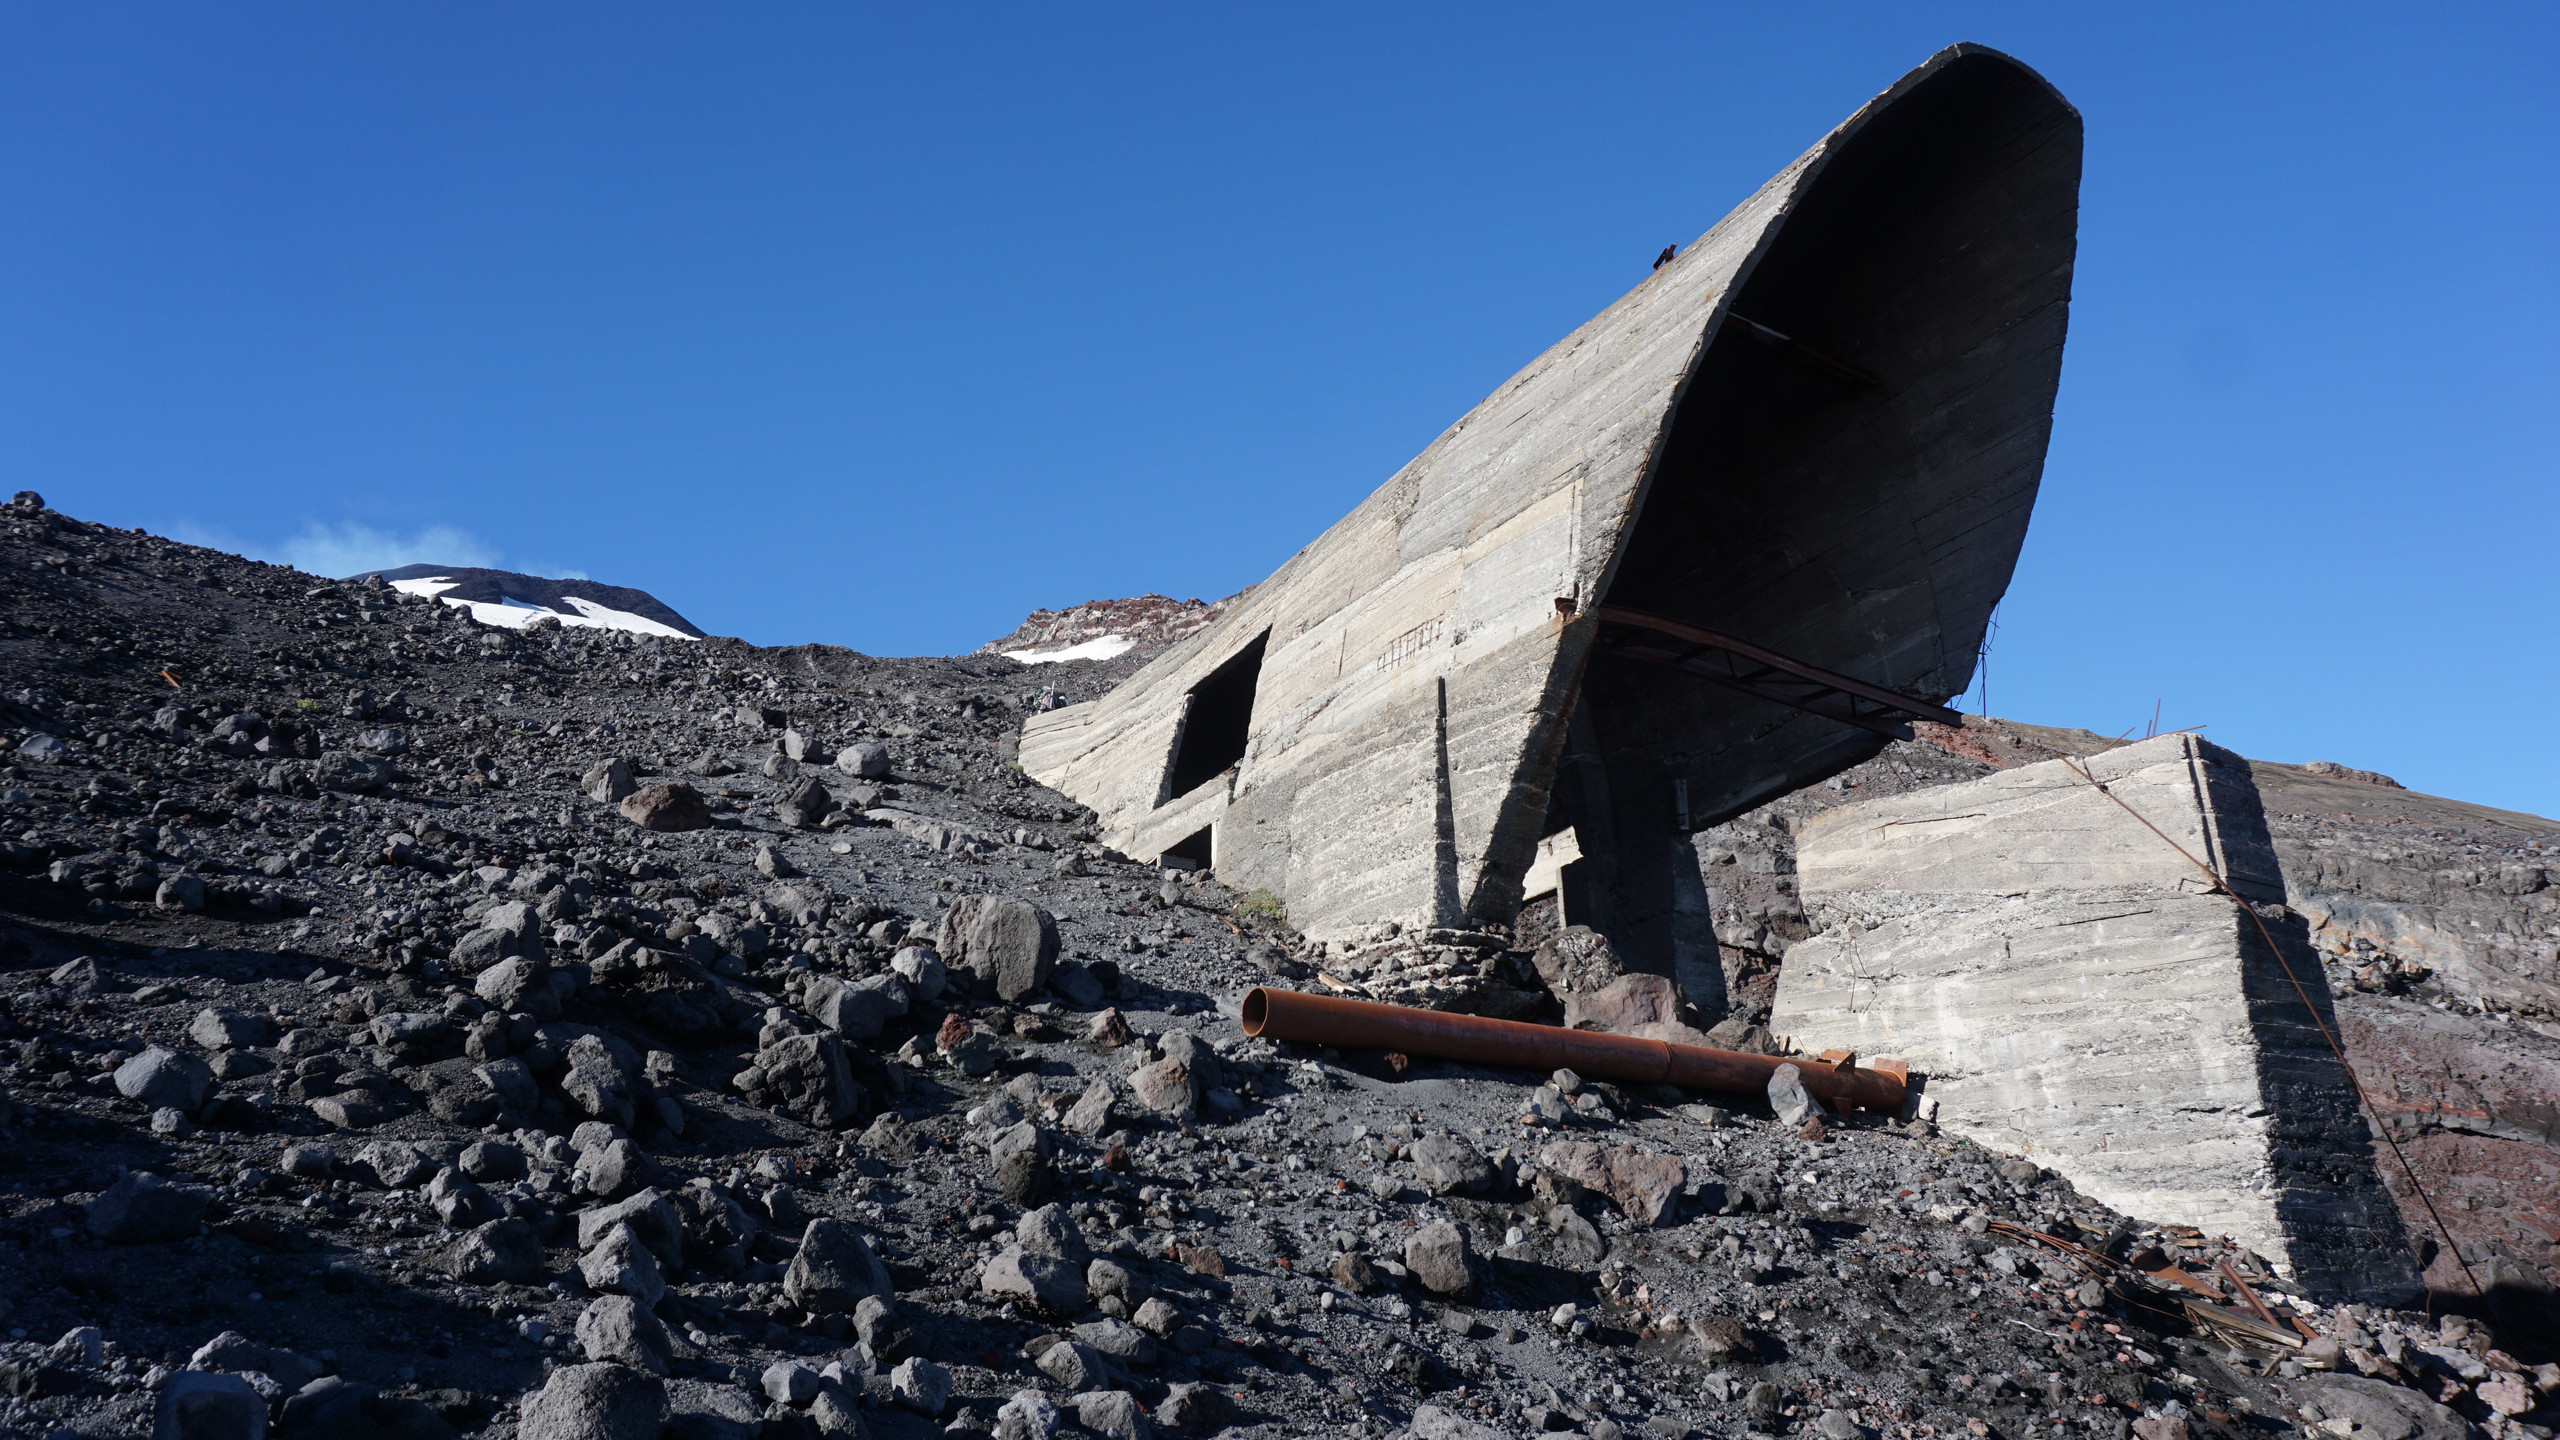 An abandoned lift terminal from an eruption some years ago